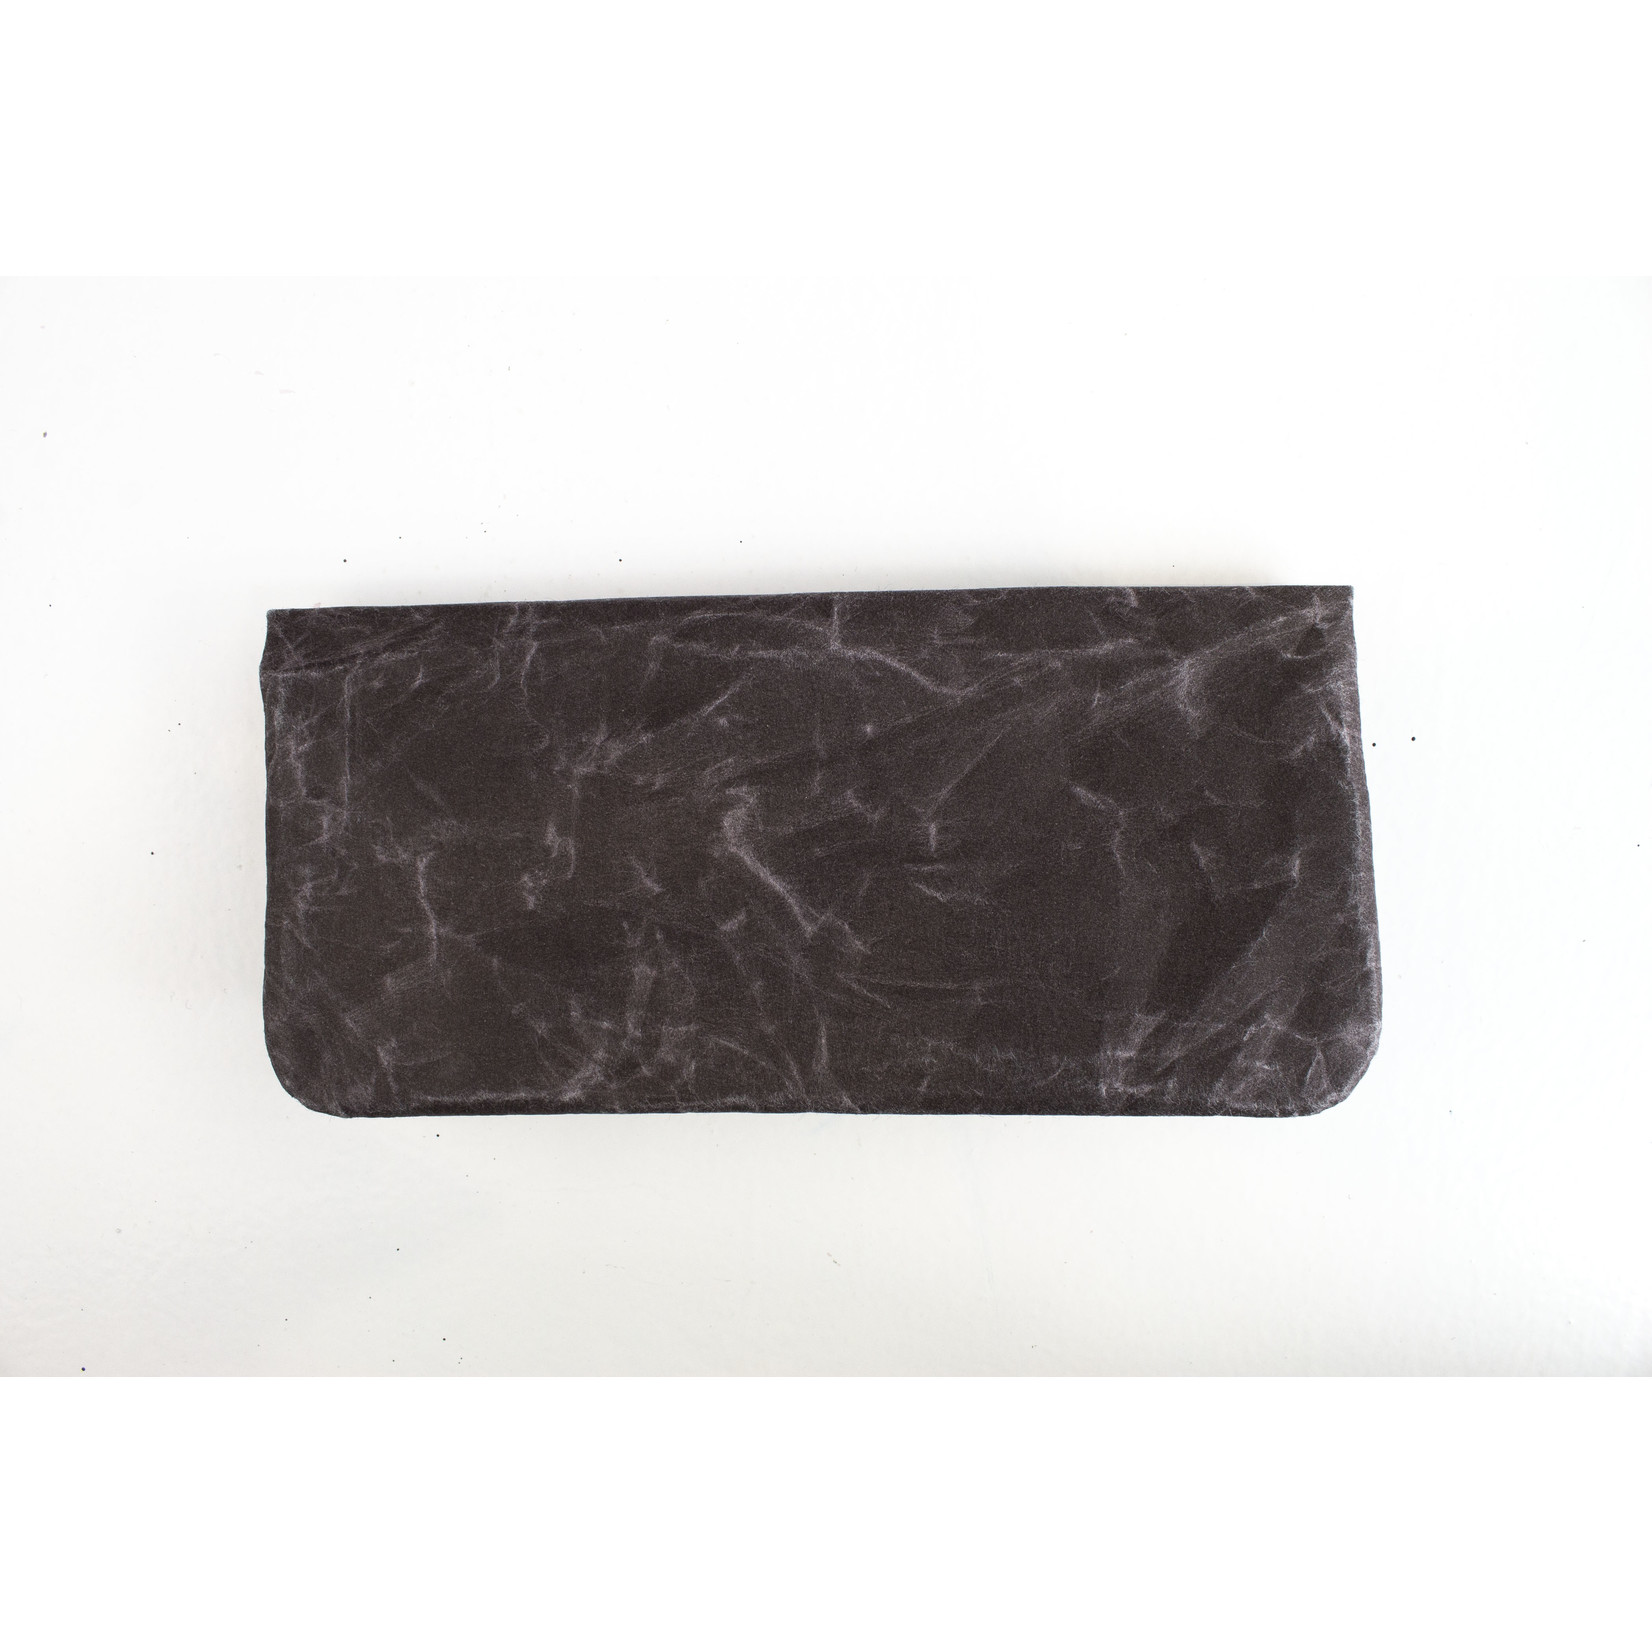 Based on Roots SIWA long wallet